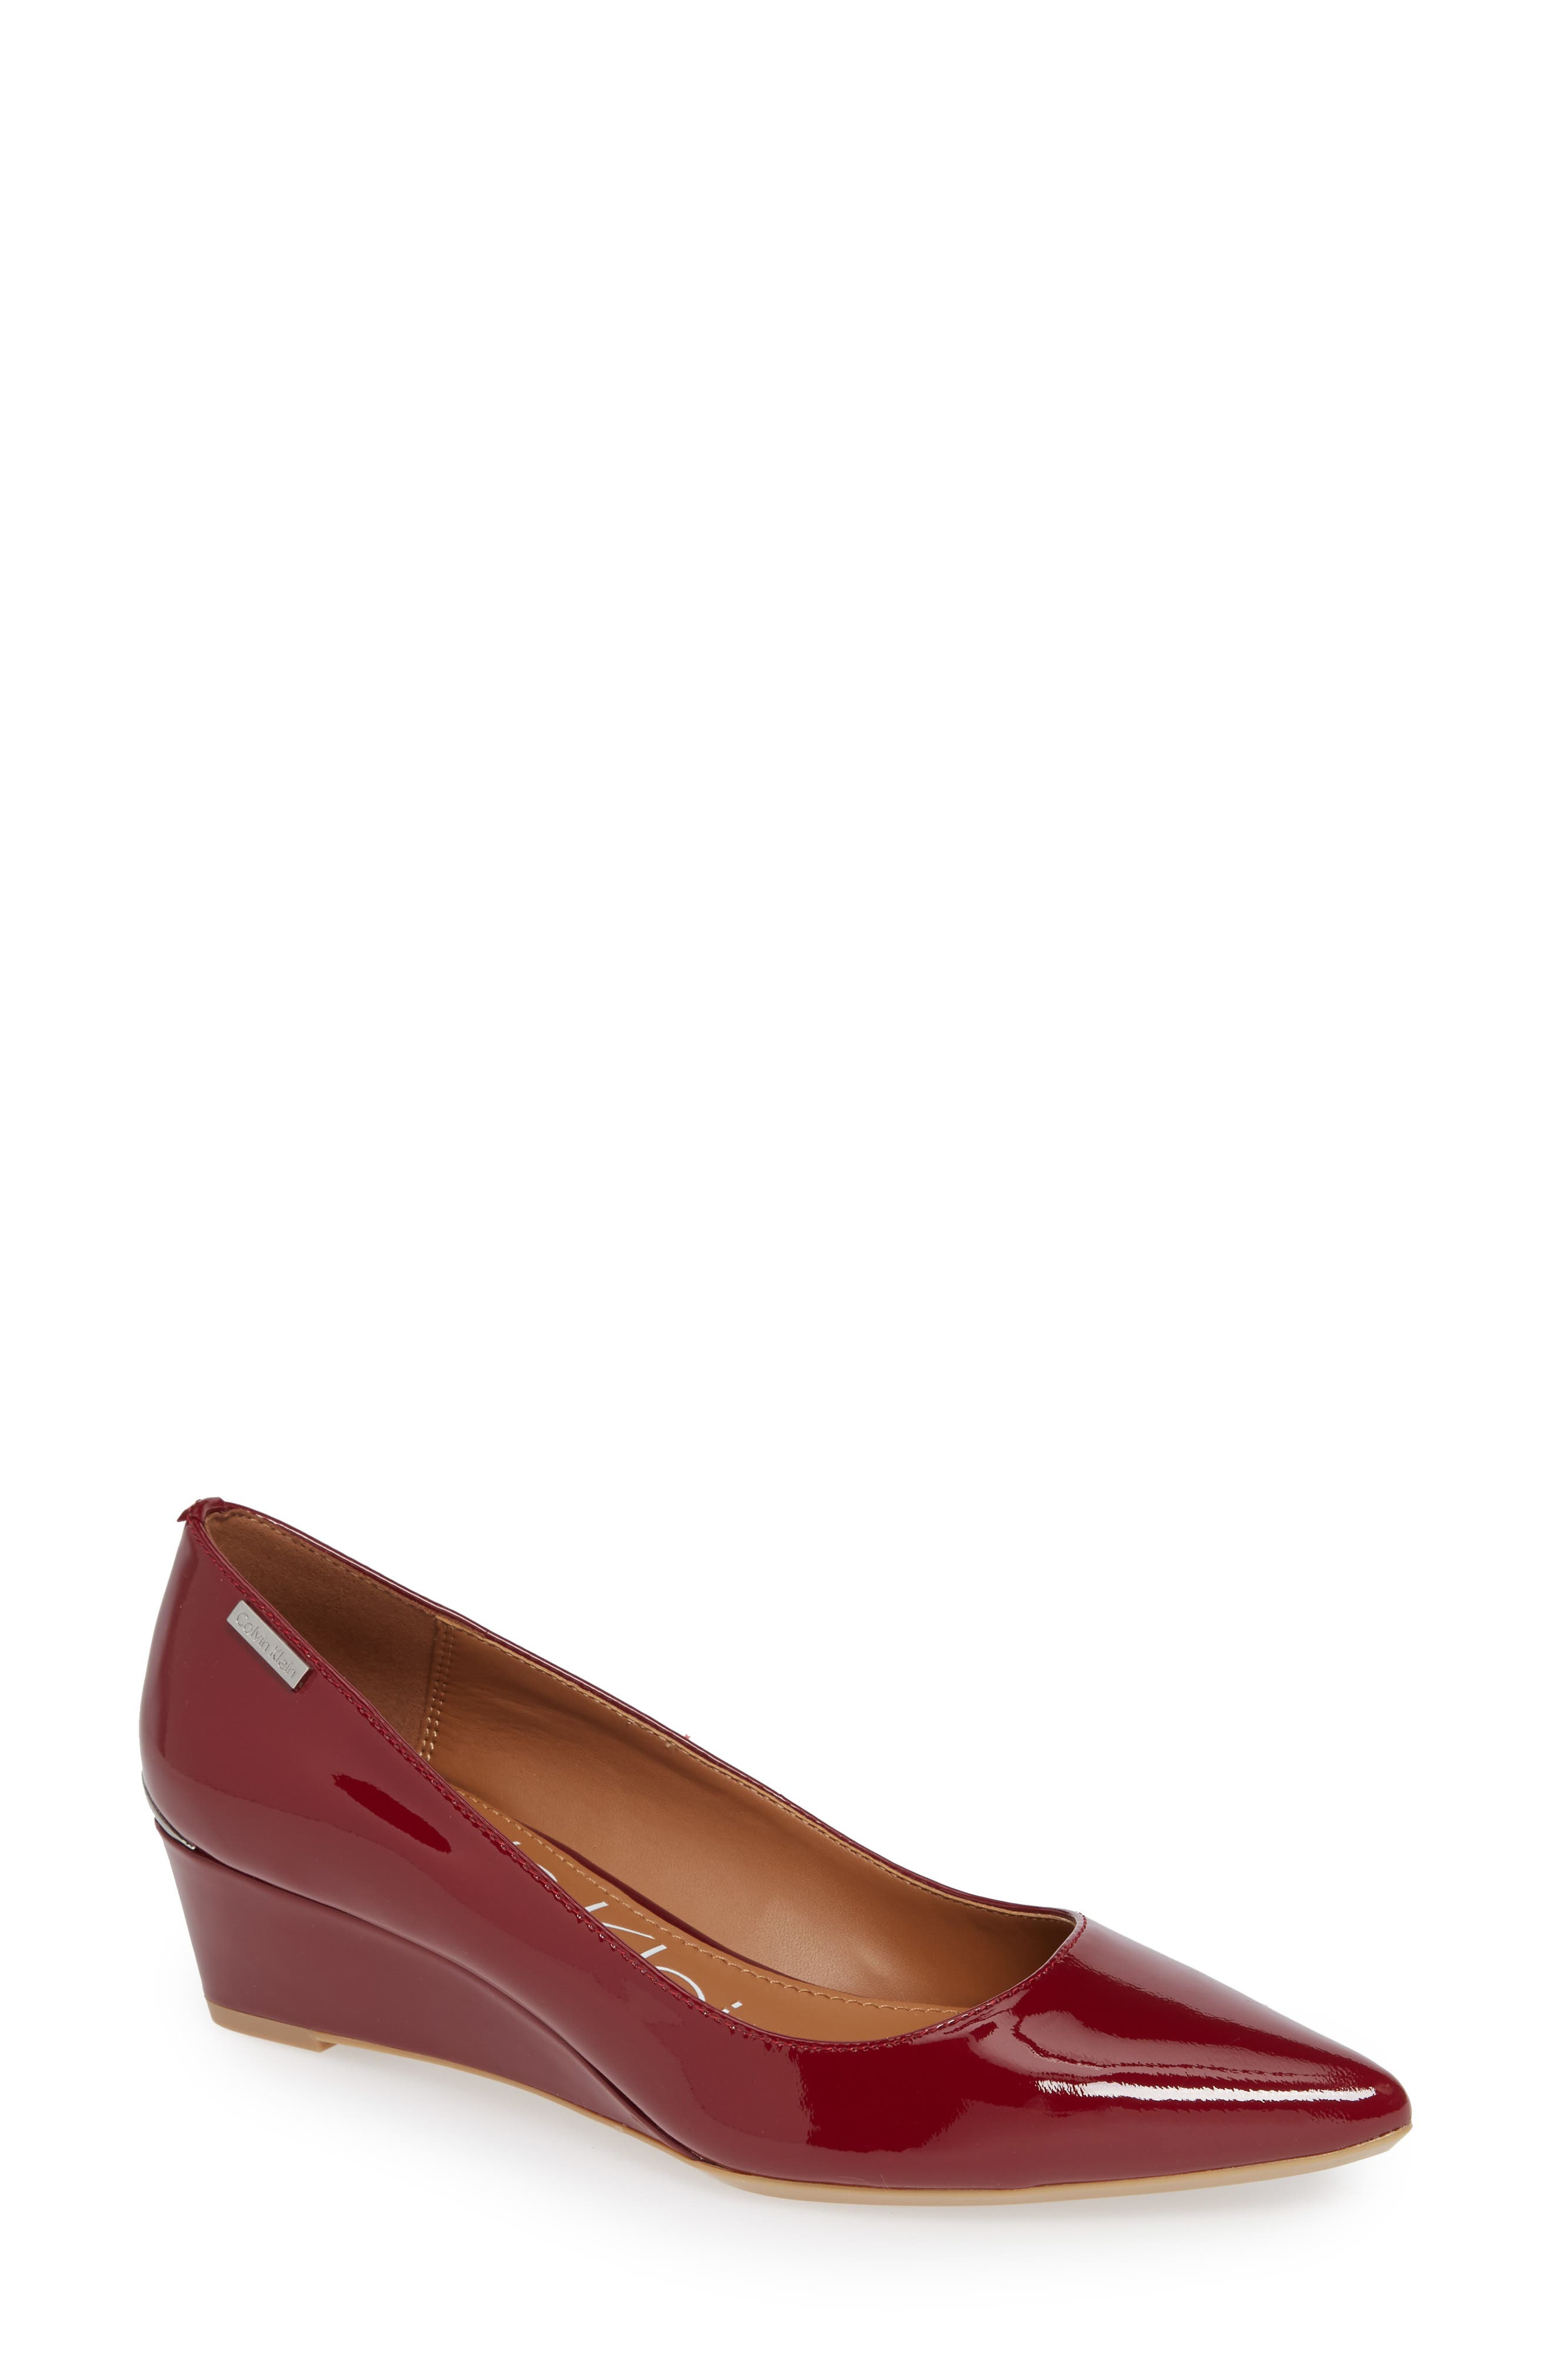 'Germina' Pointy Toe Wedge,                         Main,                         color, RED ROCK PATENT